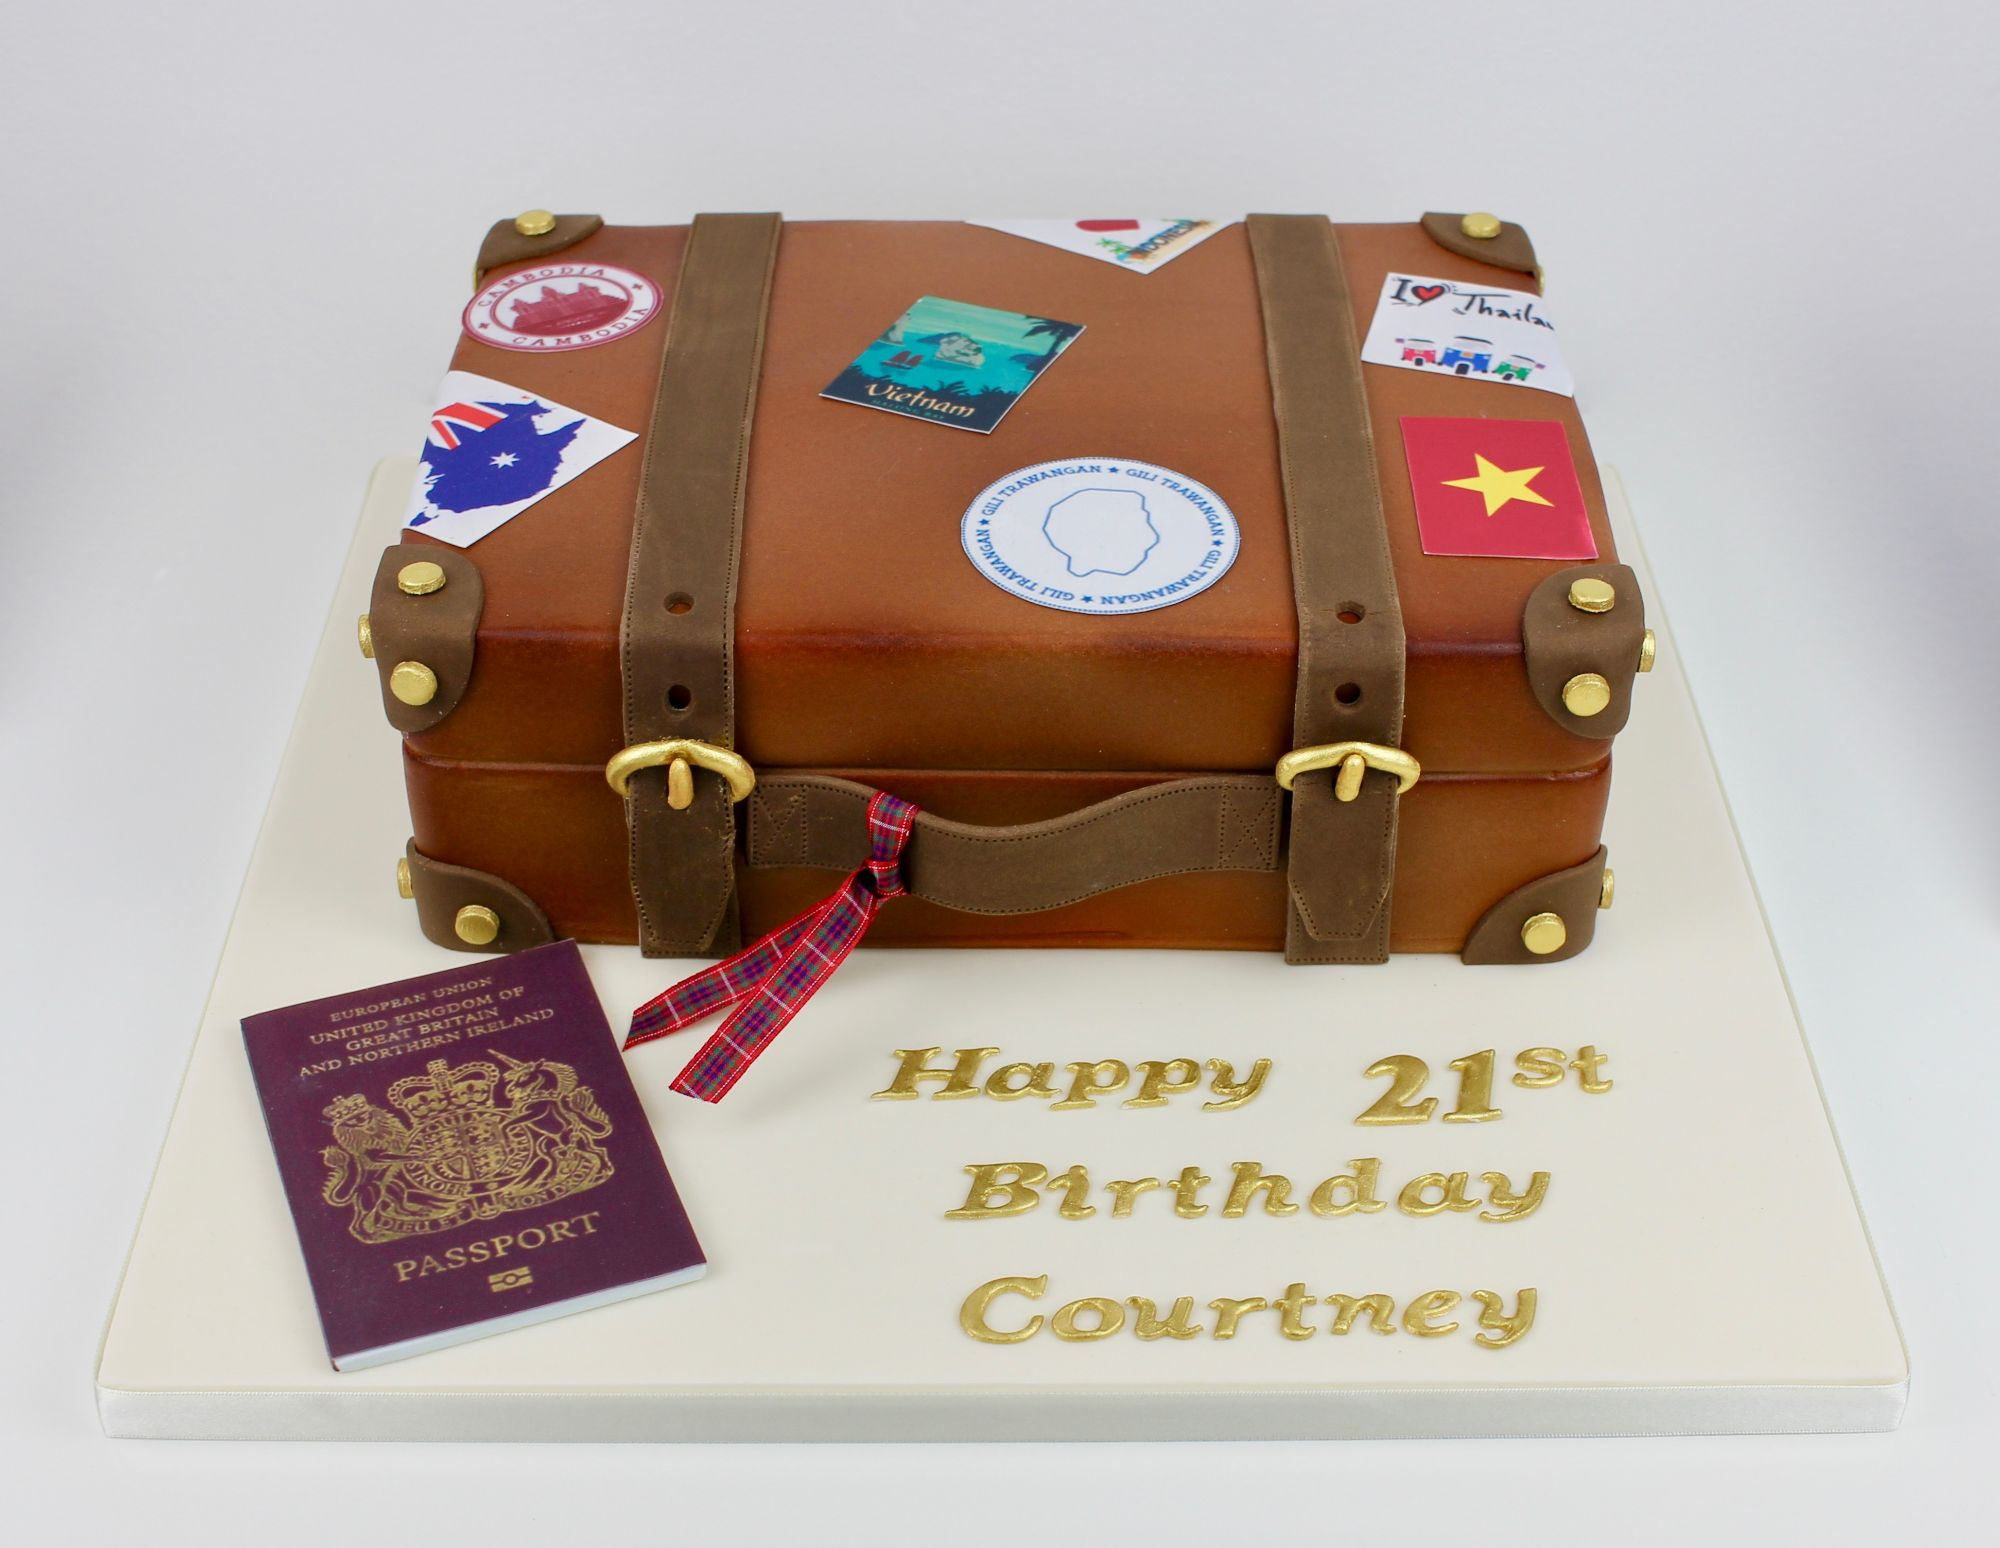 Travel suitcase themed cake